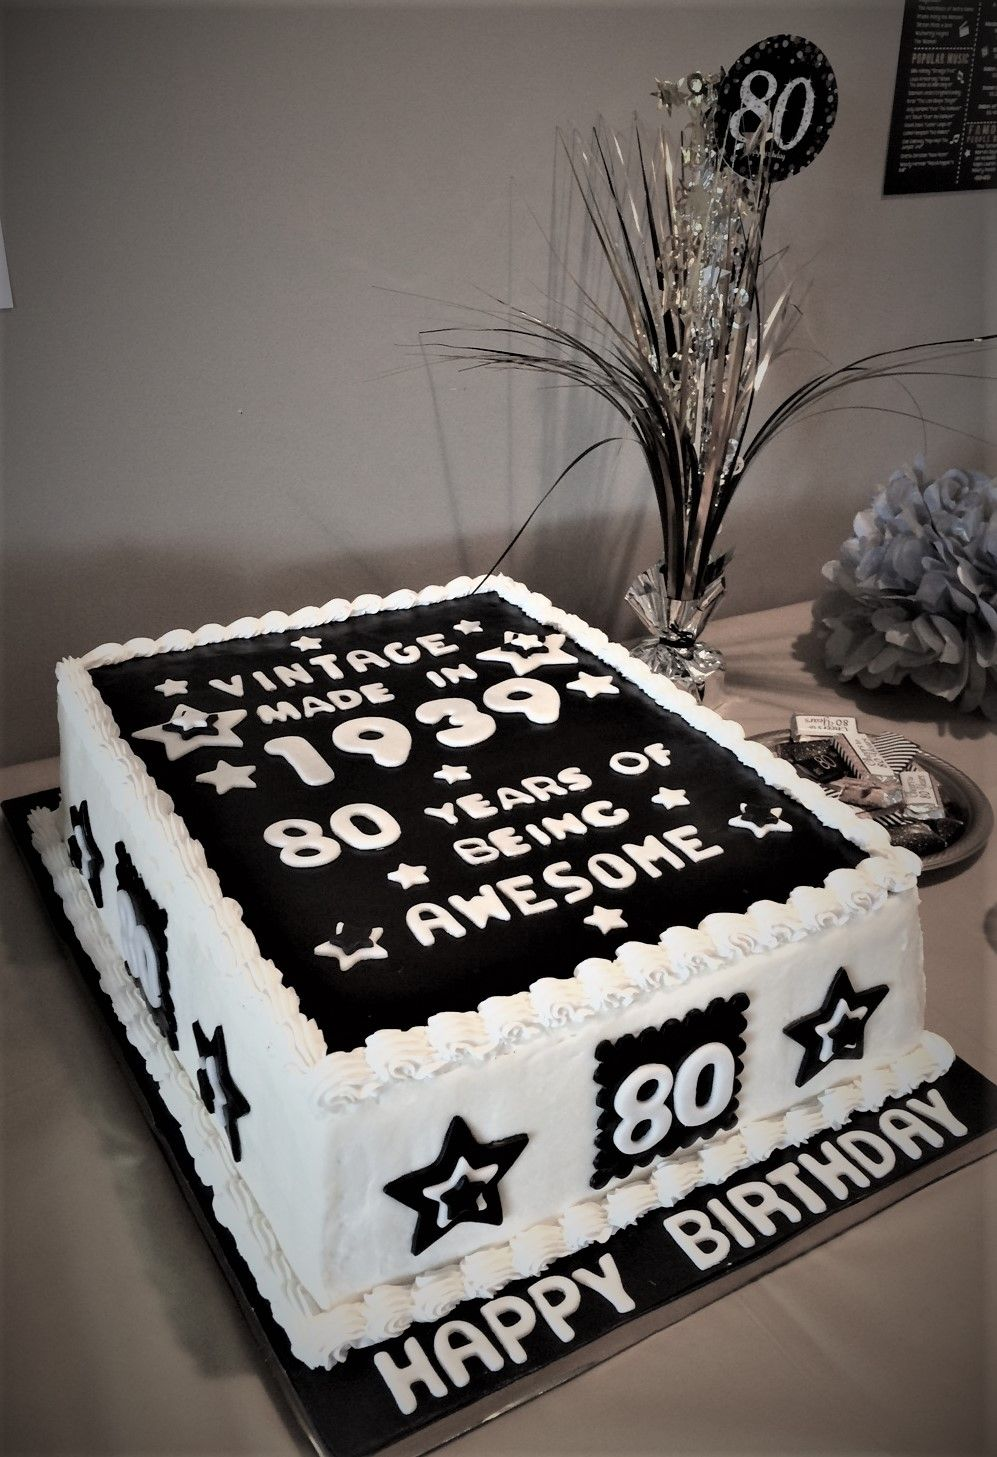 80th Birthday Cake Sheet Cakes For Birthdays Vintage Birthday Cakes Men S Birthday Cakes Vintage Birthday Cakes 80 Birthday Cake 80th Birthday